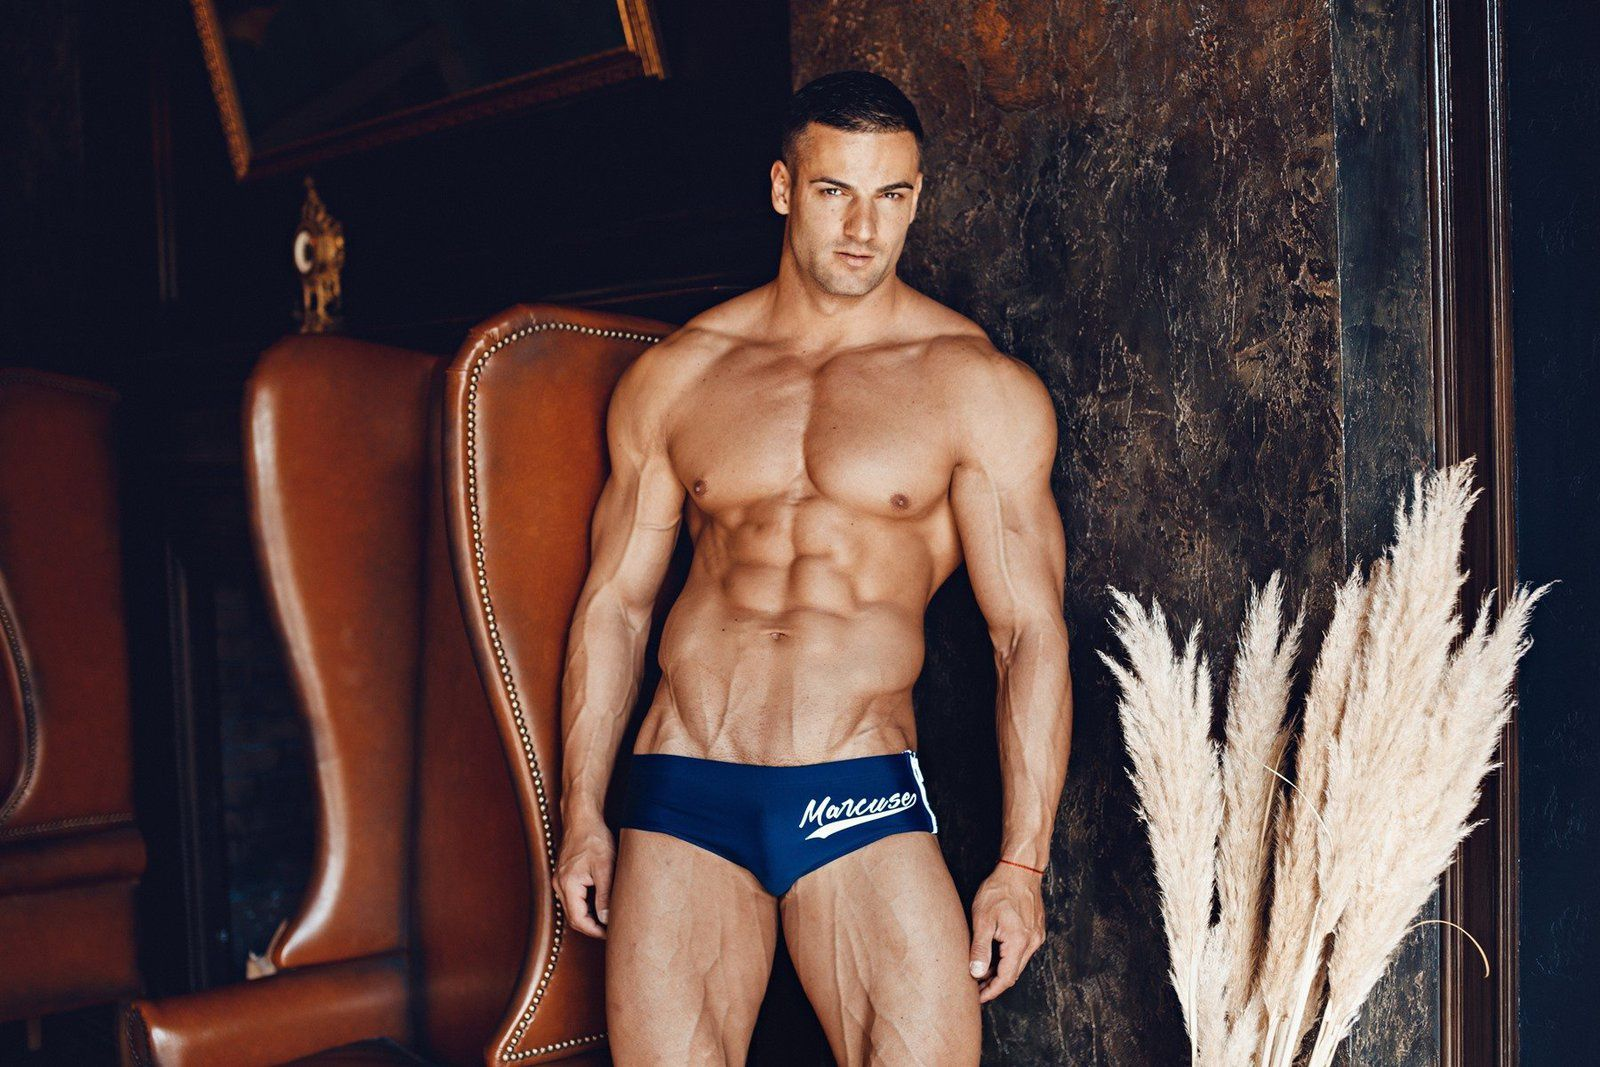 Marcuse : Pierre Z. by Pavel Lepikhin